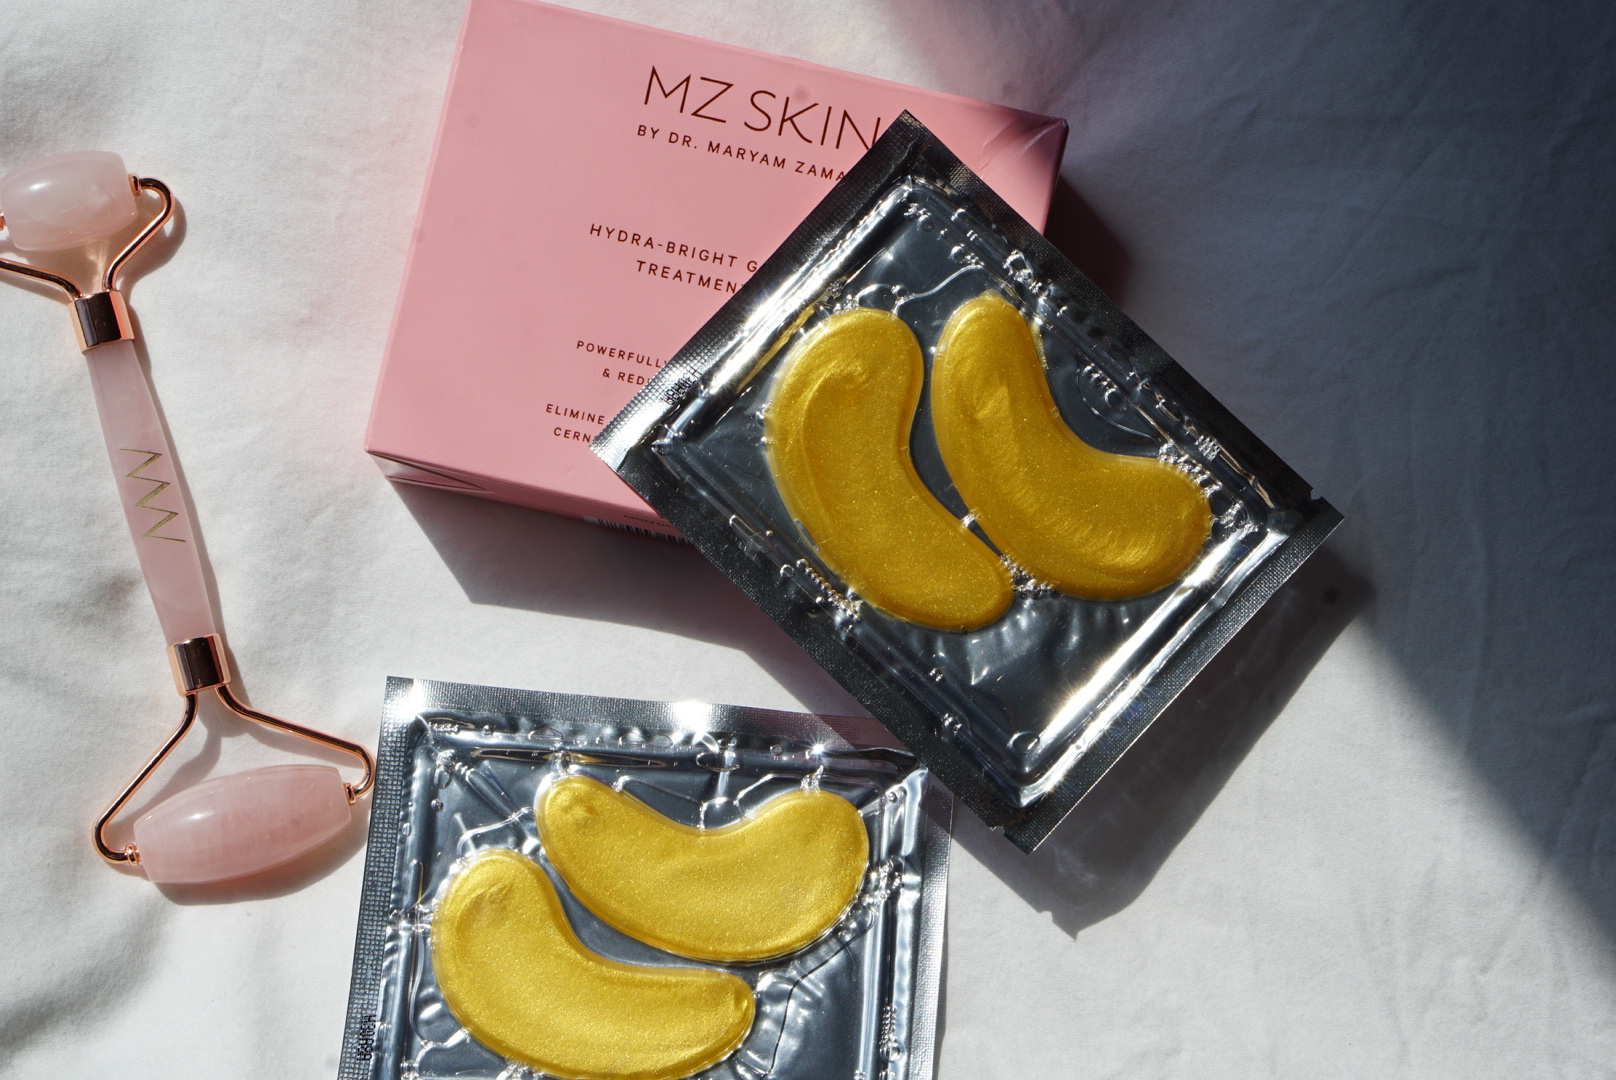 "MZ Skin's Hydra-bright Golden Eye Treatment Mask - The eye masks help restore radiance and ""wakes up"" tired-looking skin. Infused with Nano Gold particles to deeply penetrate the delicate area, the gel eye pads are supercharged with Collagen, Hyaluronic Acid and Seaweed to improve elasticity, minimize the appearance of fine lines and reduce puffiness.This luxury gift makes an impression upon first glance — thanks to the gold! I think this is the type of product that moms never spoil themselves to have, but would obviously never reject as a gift! One box comes with 6 pairs."